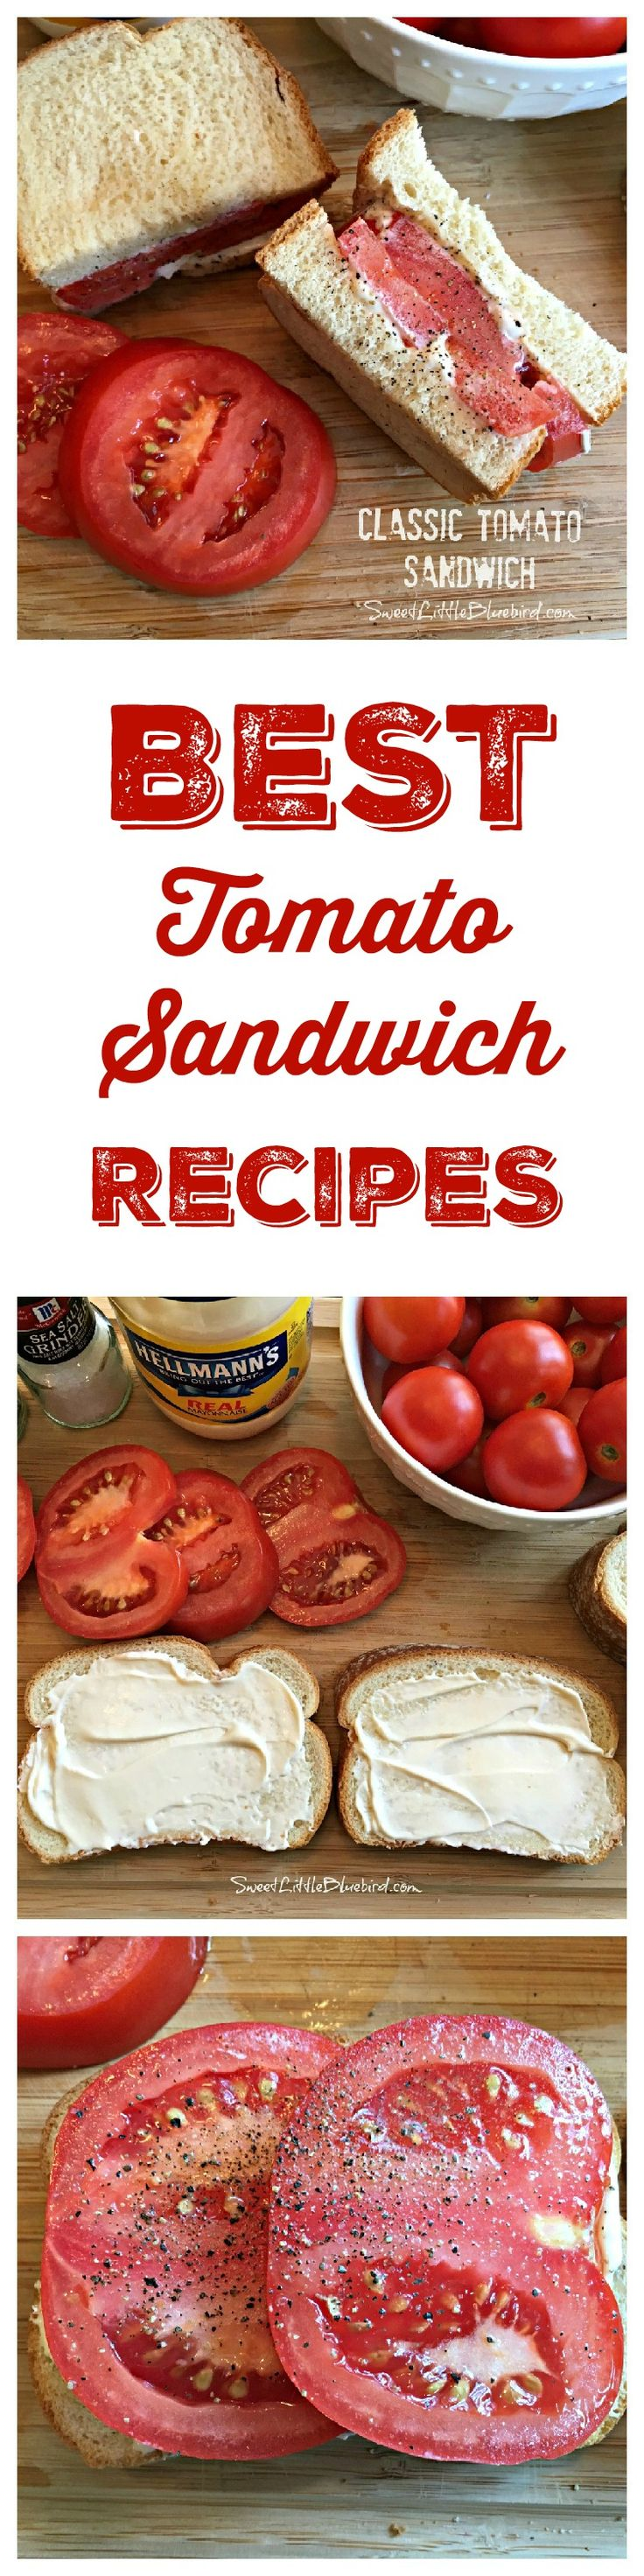 THE BEST TOMATO SANDWICH RECIPES -  Wondering what to do with all those summer garden tomatoes? Here are some of the BEST sandwich ideas, new and old.